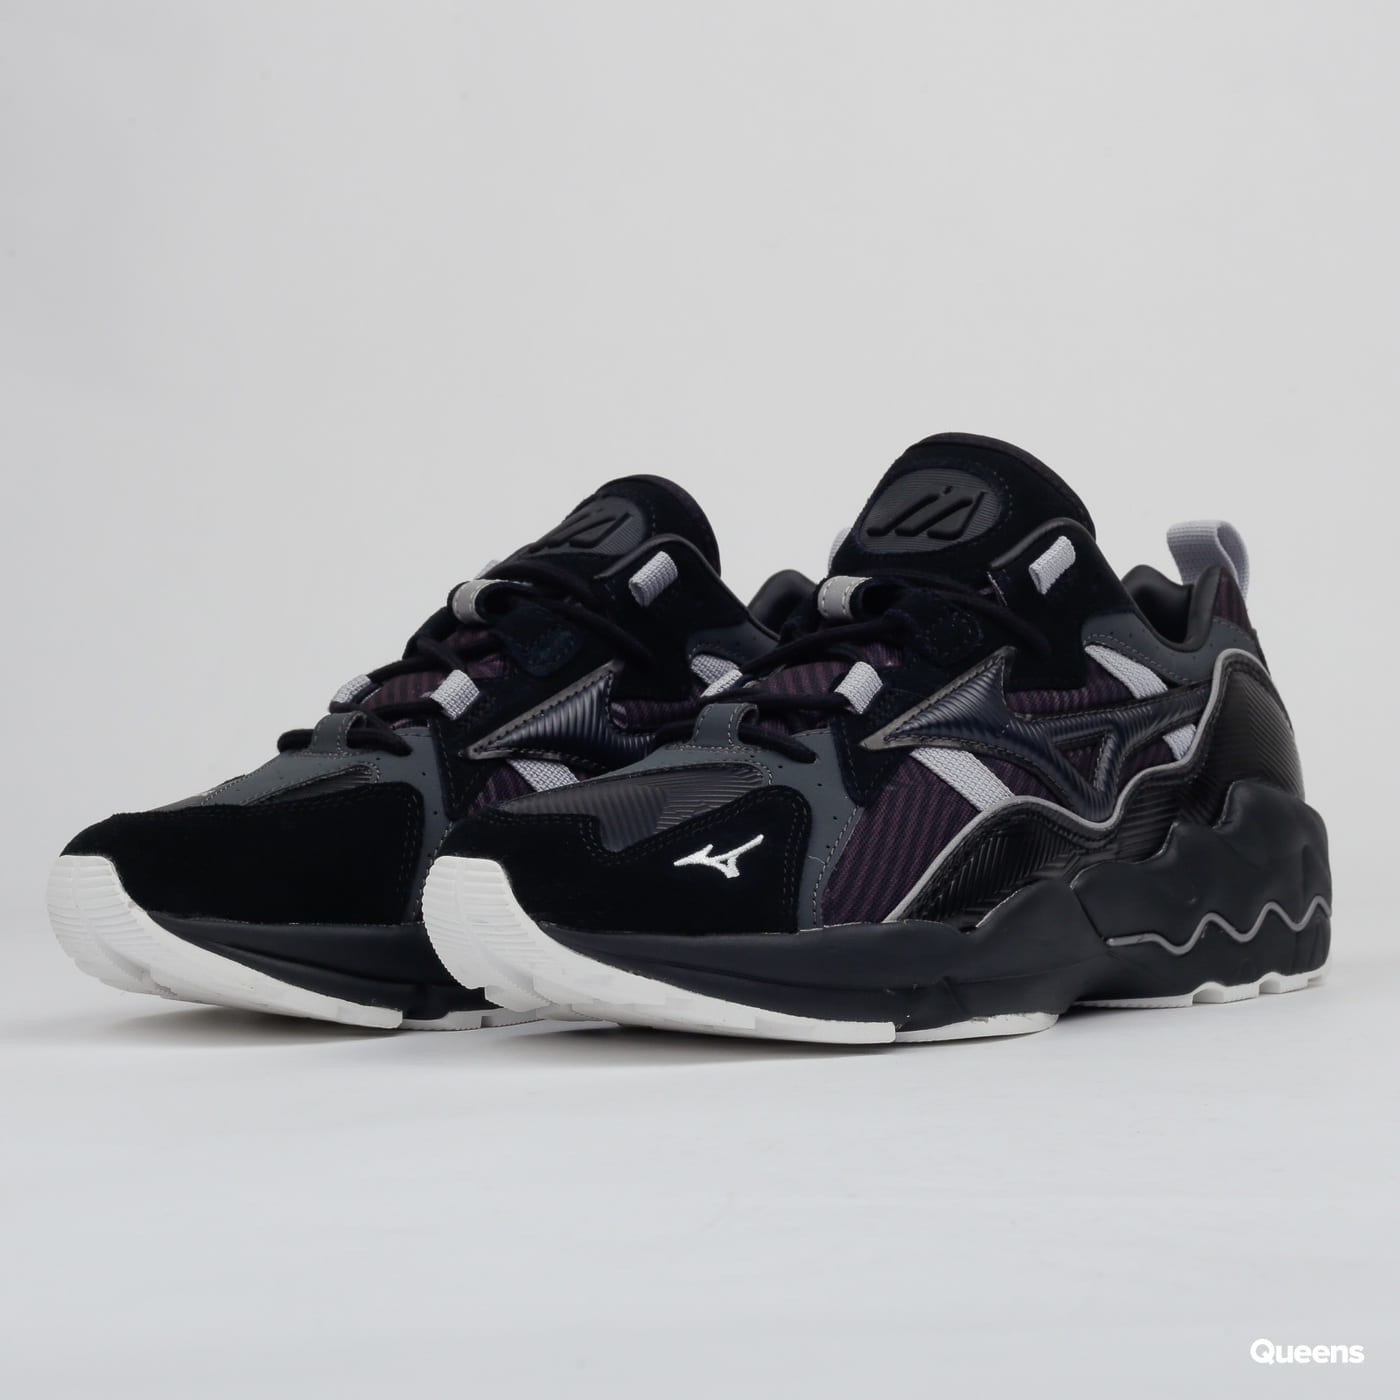 Mizuno Wave Rider 1 urban camo / black / blue graphite